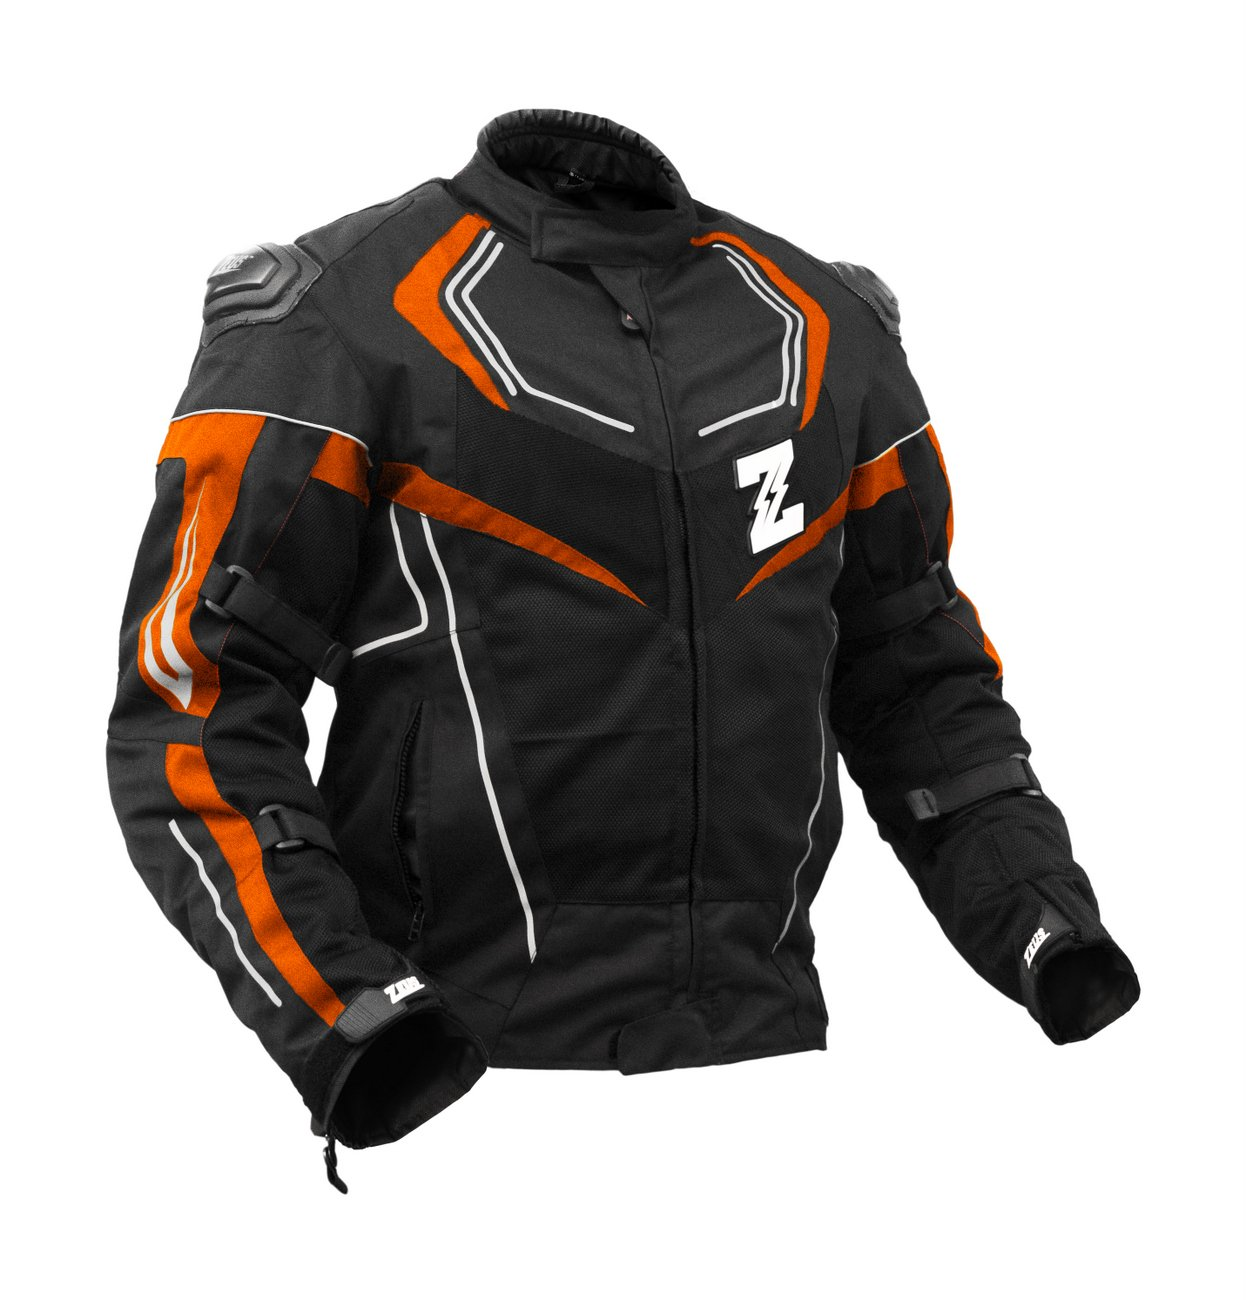 Zeus Airdrift SP-X All Season Biker Jacket